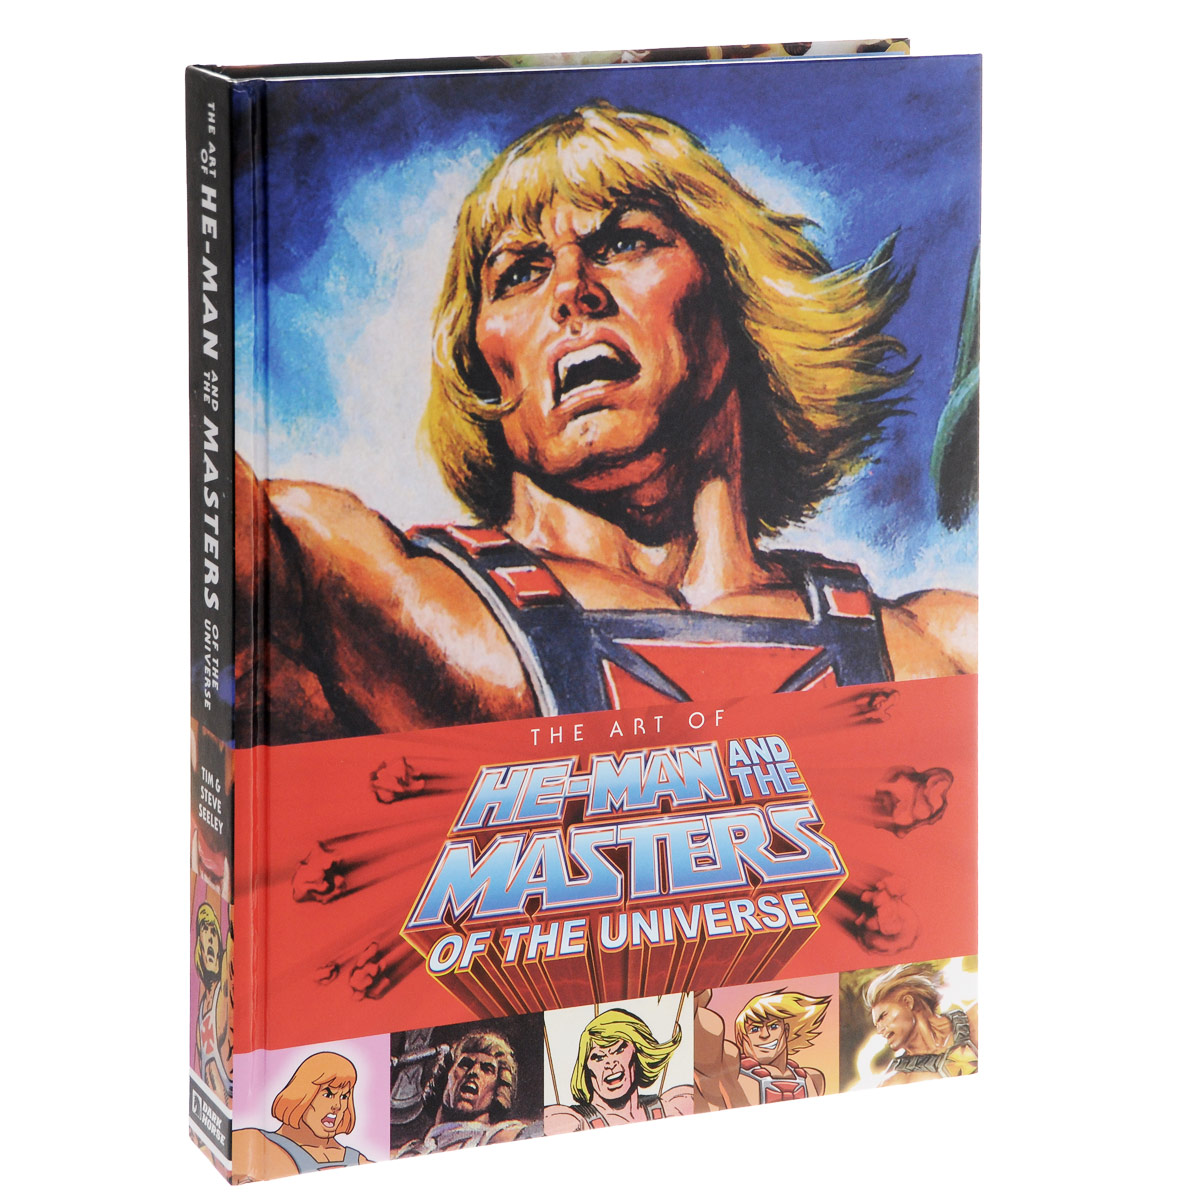 The Art of He Man and the Masters of the Universe masters of the universe